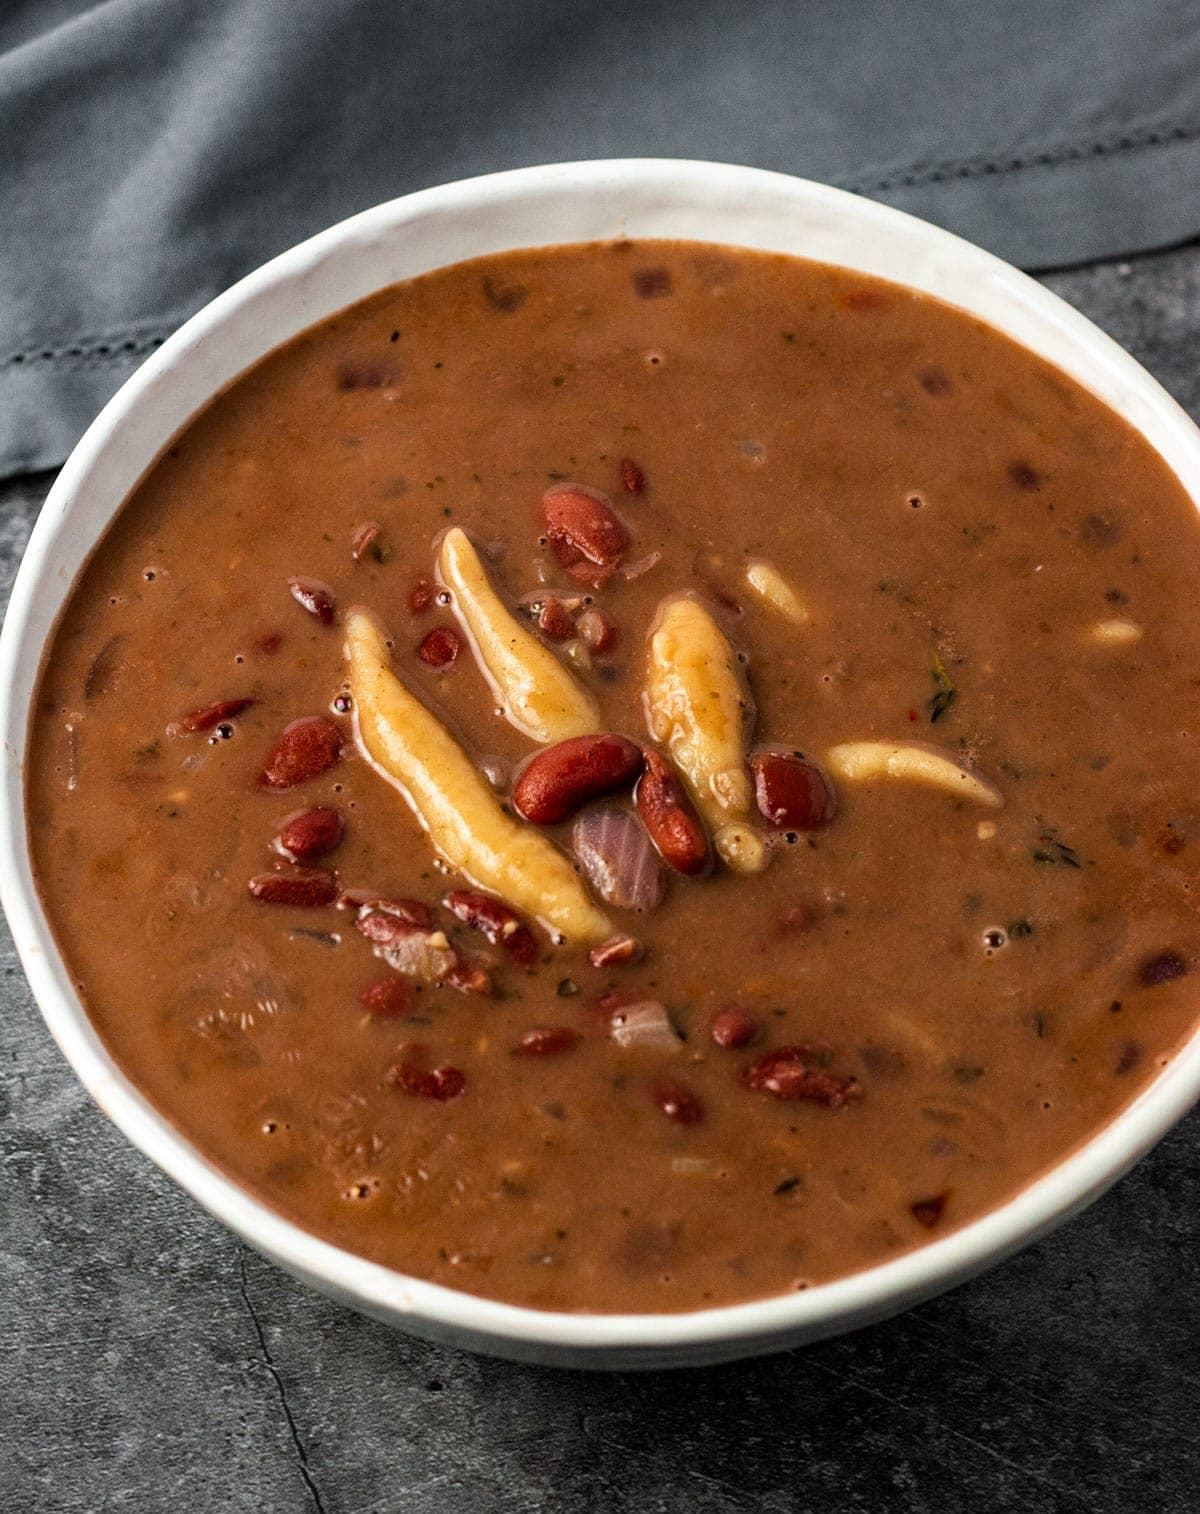 Overlay Red peas soup with dumplings in a white bowl on a grey background